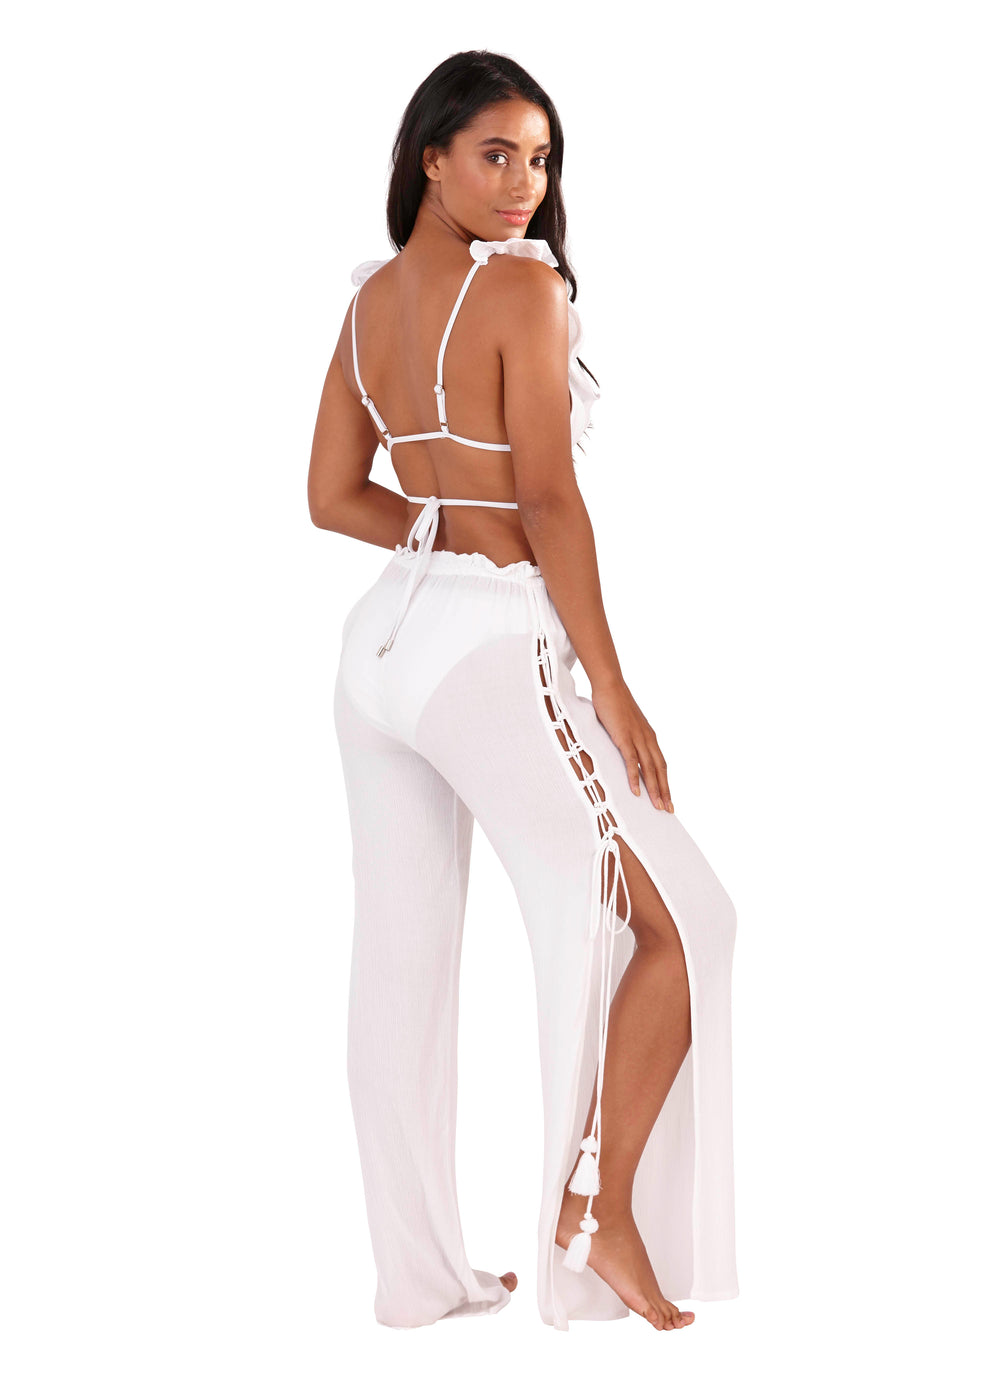 South Beach - White Chiffon Beach Pants - SB0018-W-F